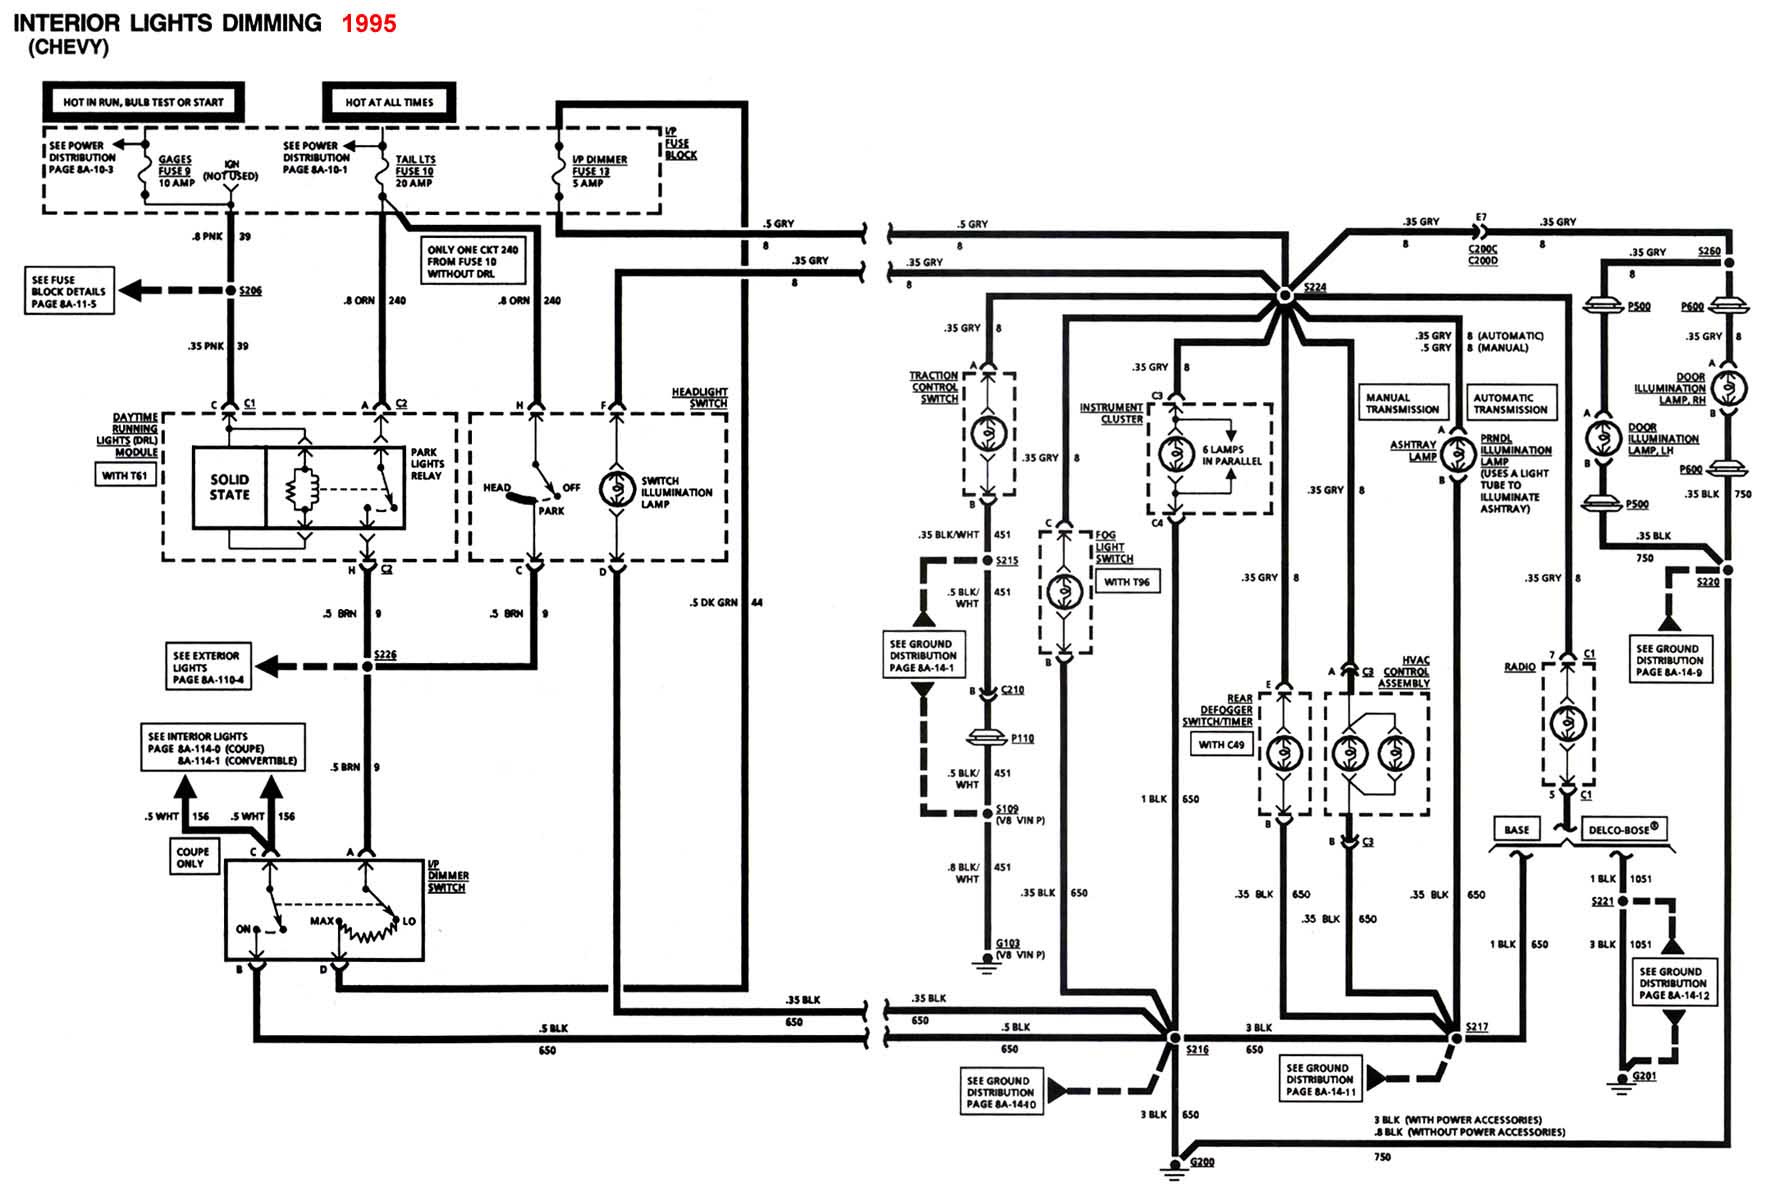 hight resolution of lt1 wiring diagram wiring diagram lt1 wiring harness diagram 1998 ford mustang engine diagram lt1 wiring